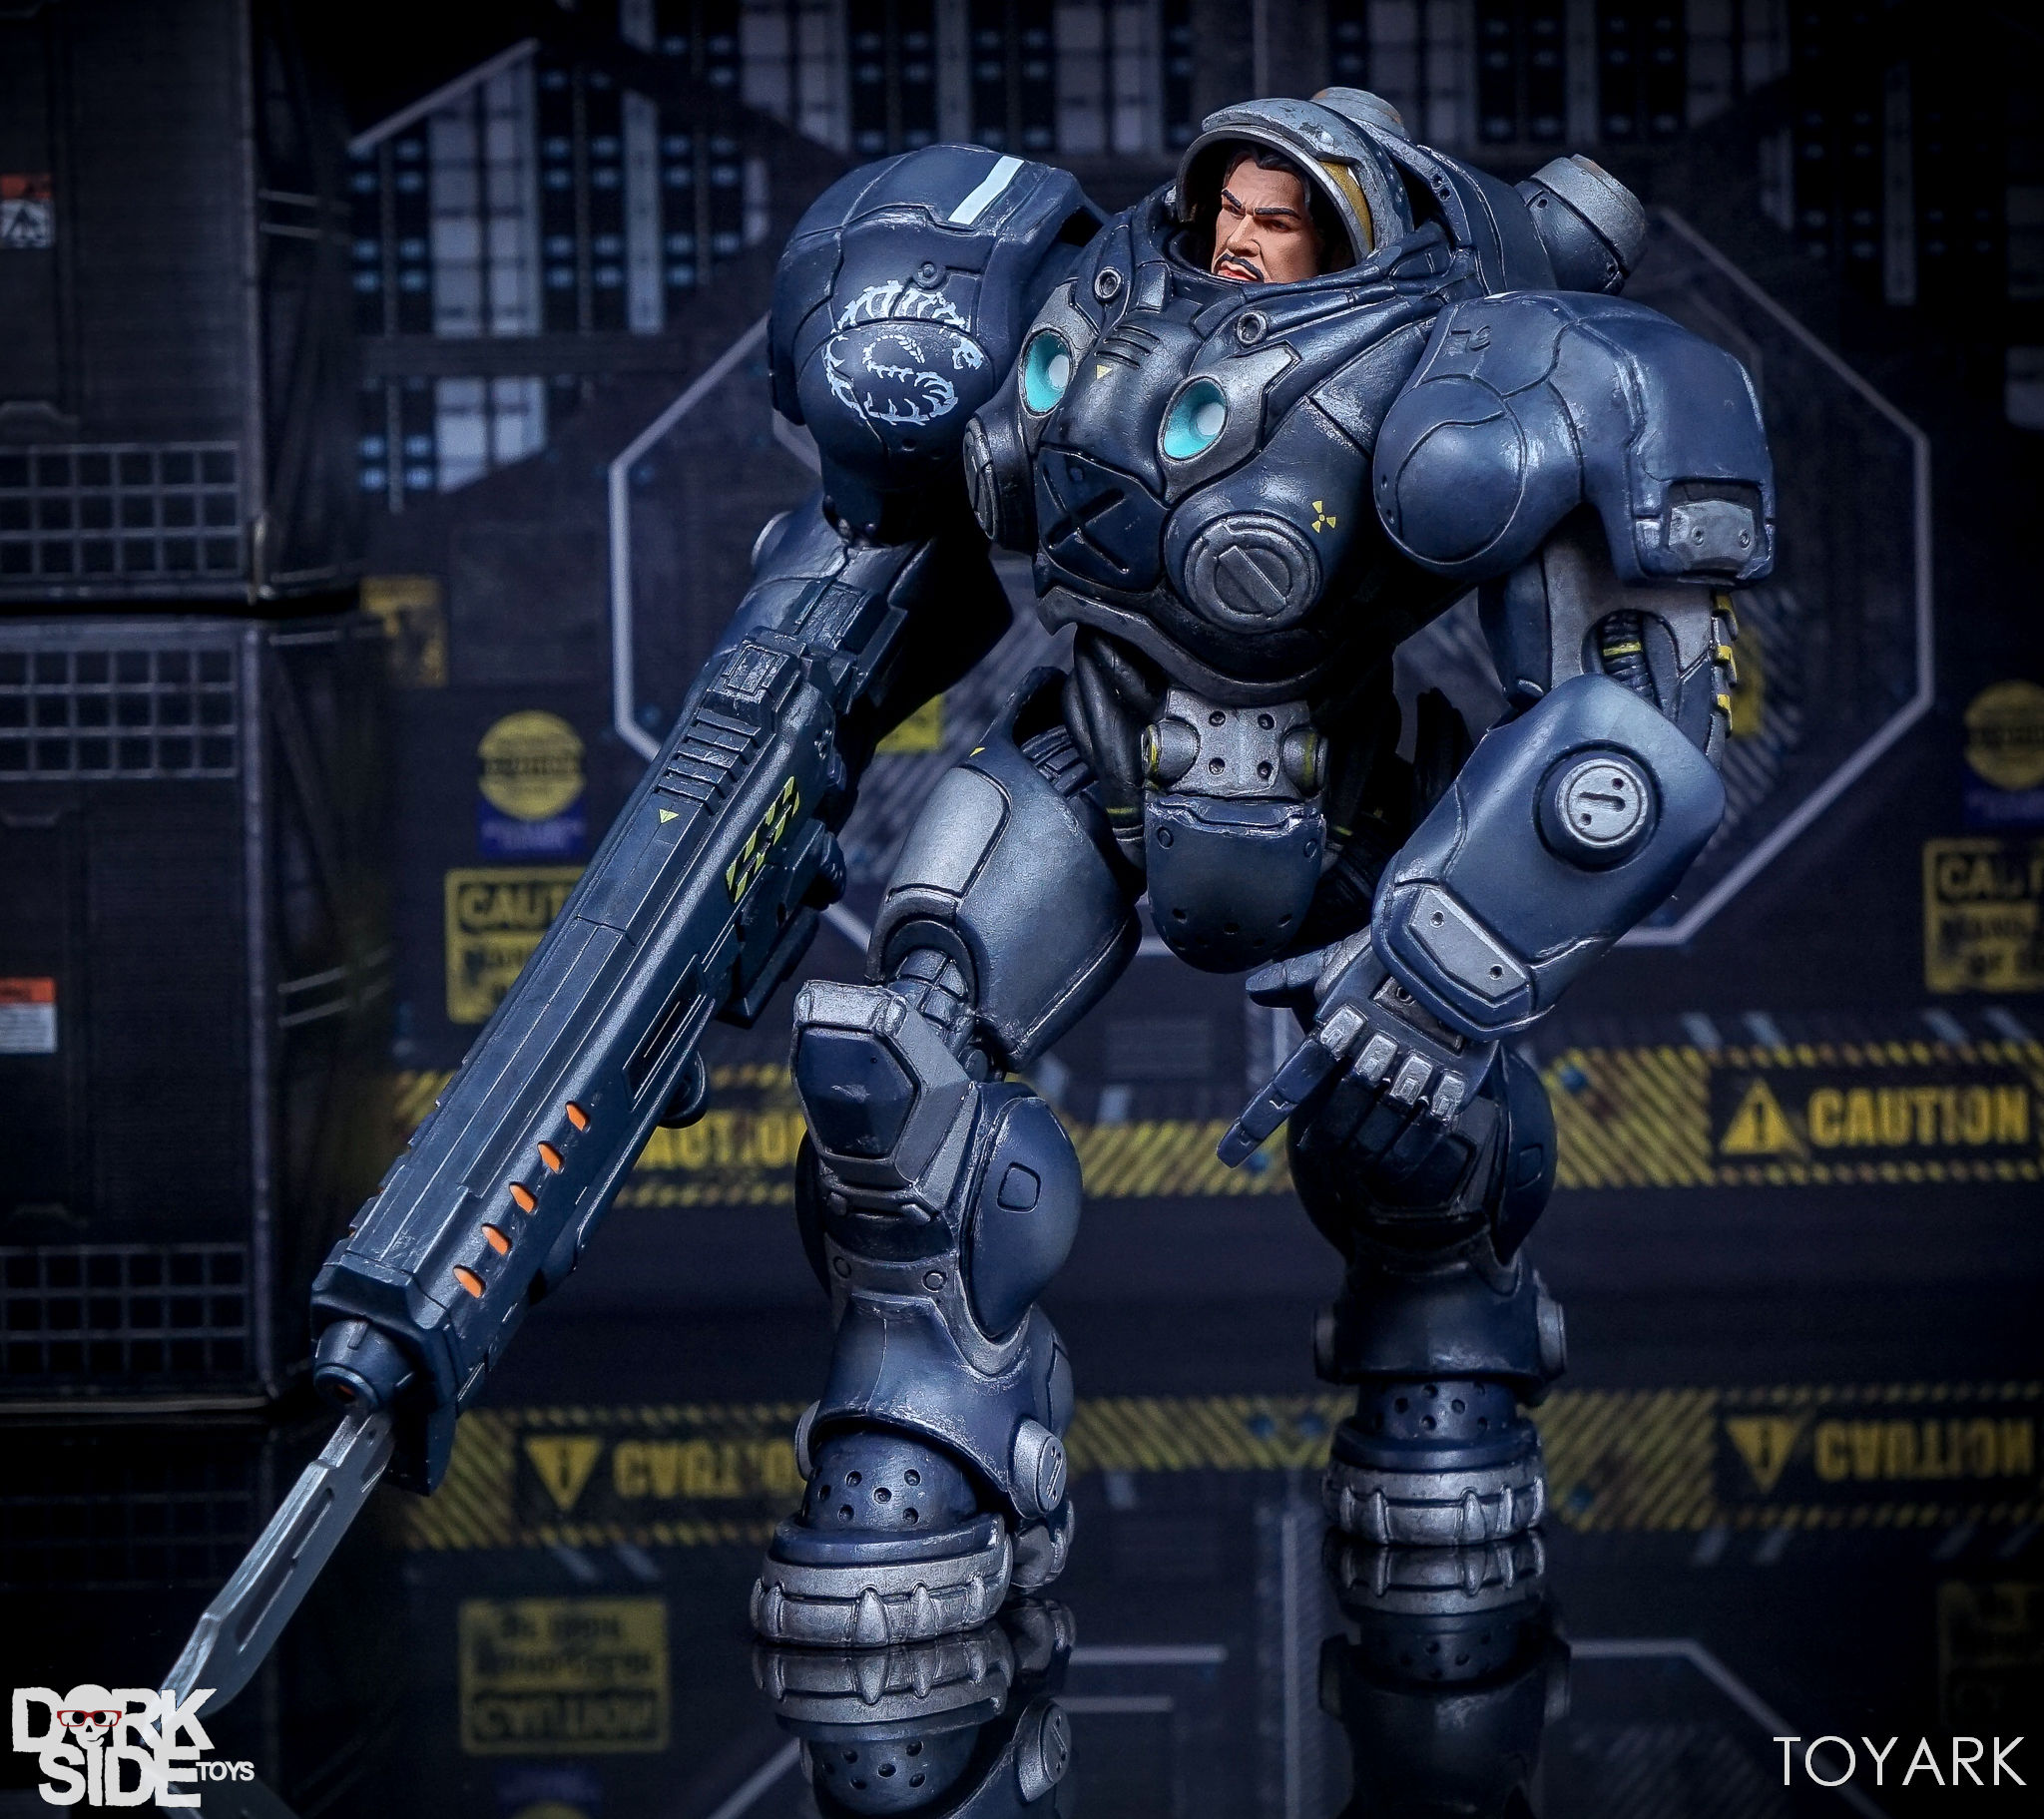 http://news.toyark.com/wp-content/uploads/sites/4/2017/08/NECA-Heroes-of-the-Storm-Raynor-030.jpg